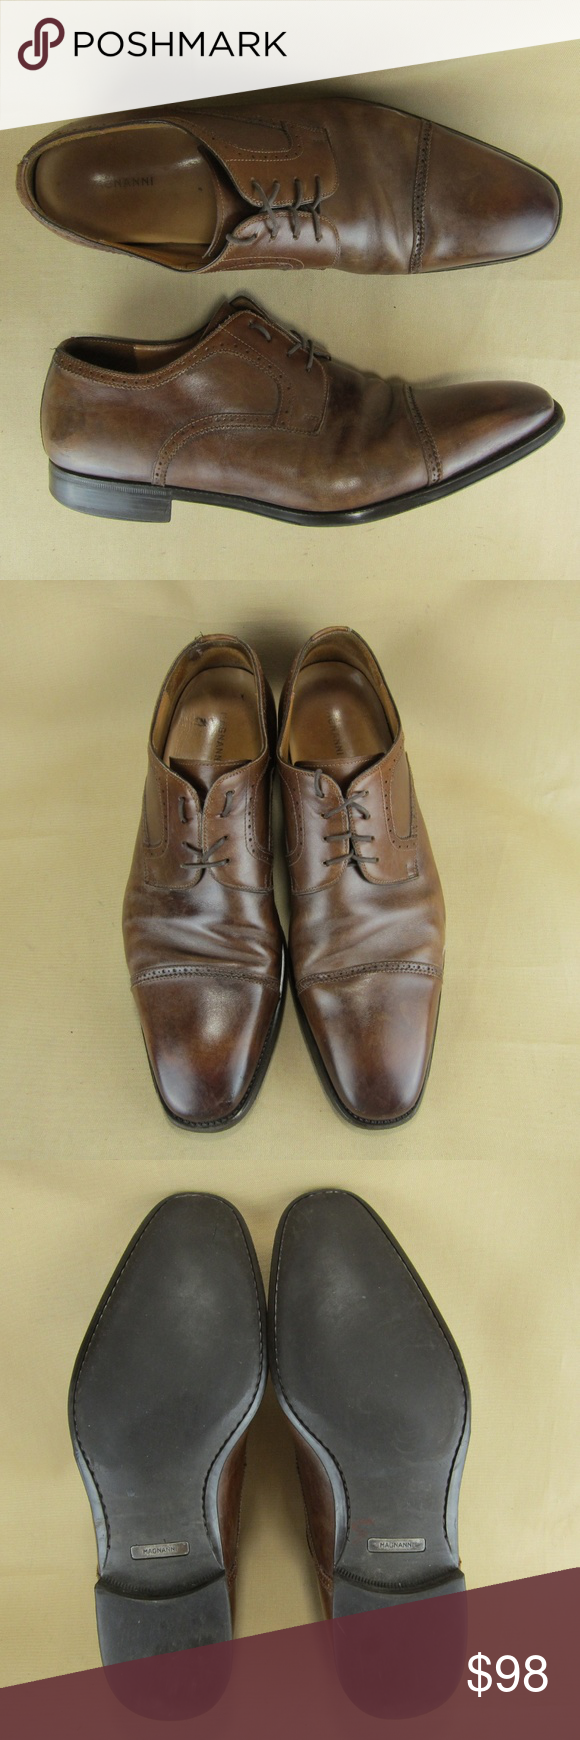 Magnanni  US 14 D Men Oxford Cap Toe Dress Spain You are purchasing a pair of Ma...